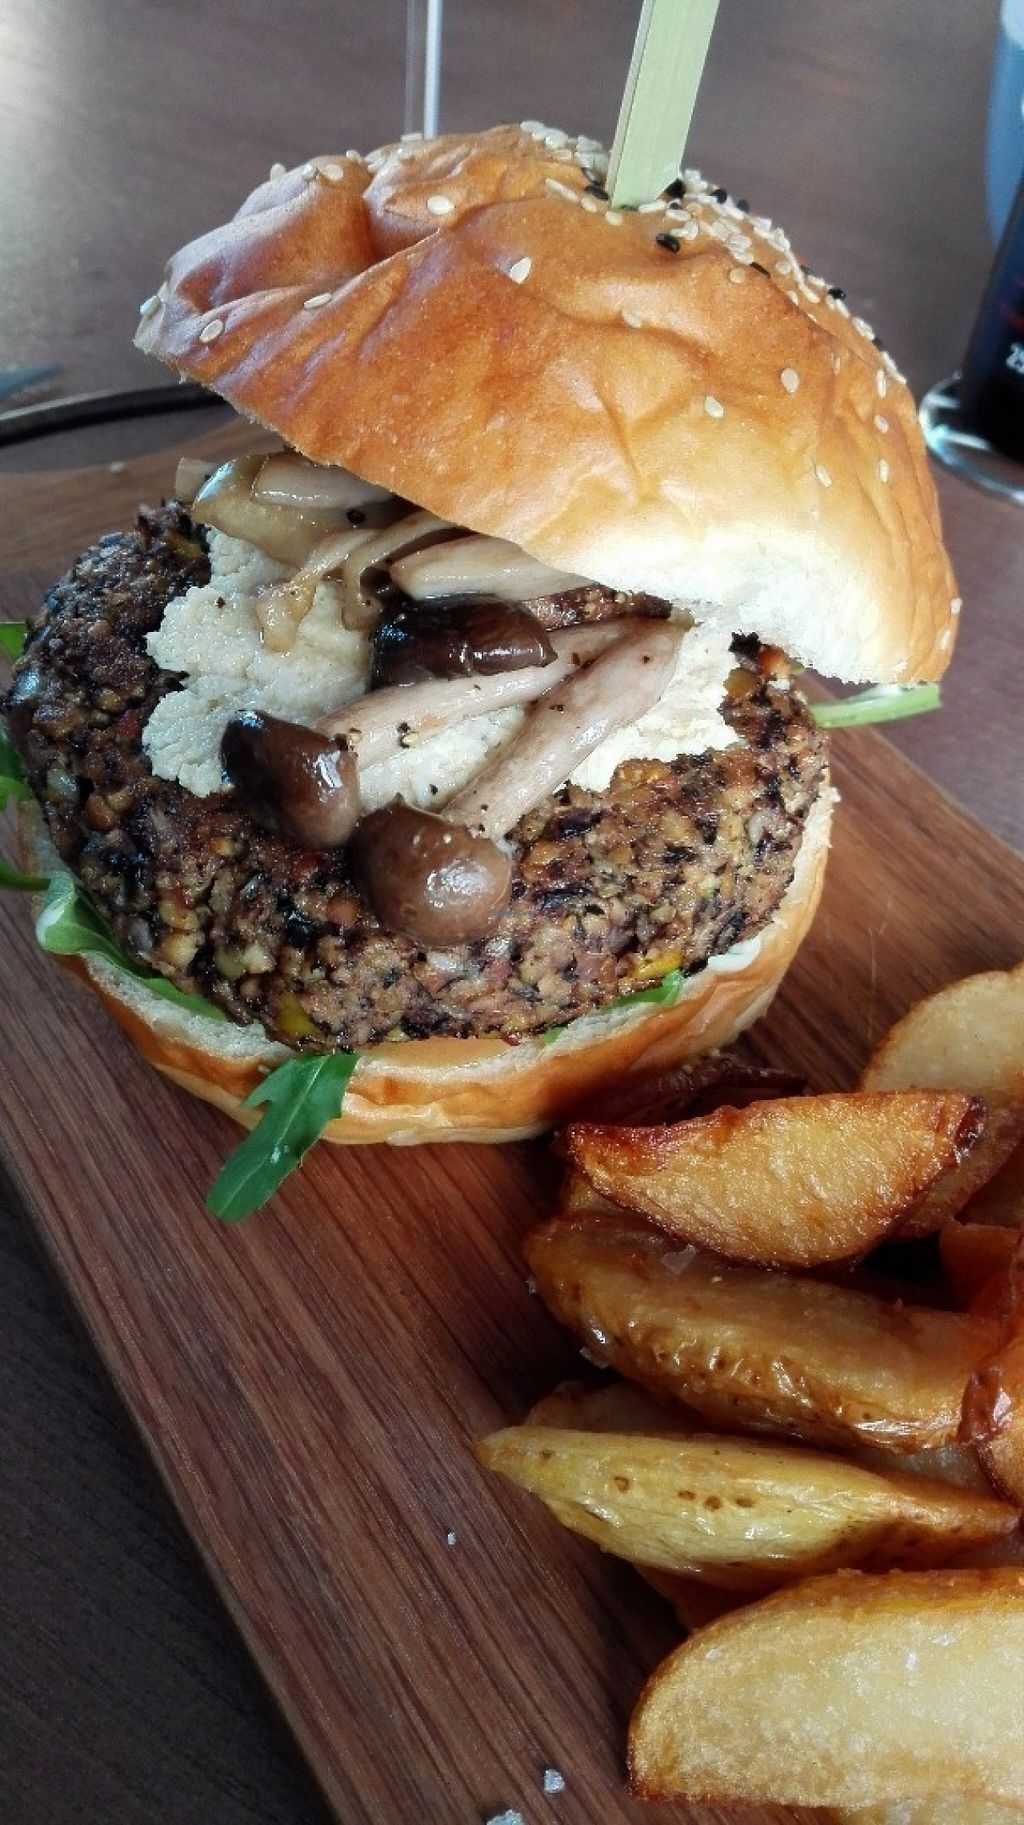 """Photo of CLOSED: Nomad Restaurant  by <a href=""""/members/profile/NatashaV"""">NatashaV</a> <br/>Vegan bean burger with wild mushrooms and cashew ricotta <br/> July 28, 2016  - <a href='/contact/abuse/image/69554/162846'>Report</a>"""